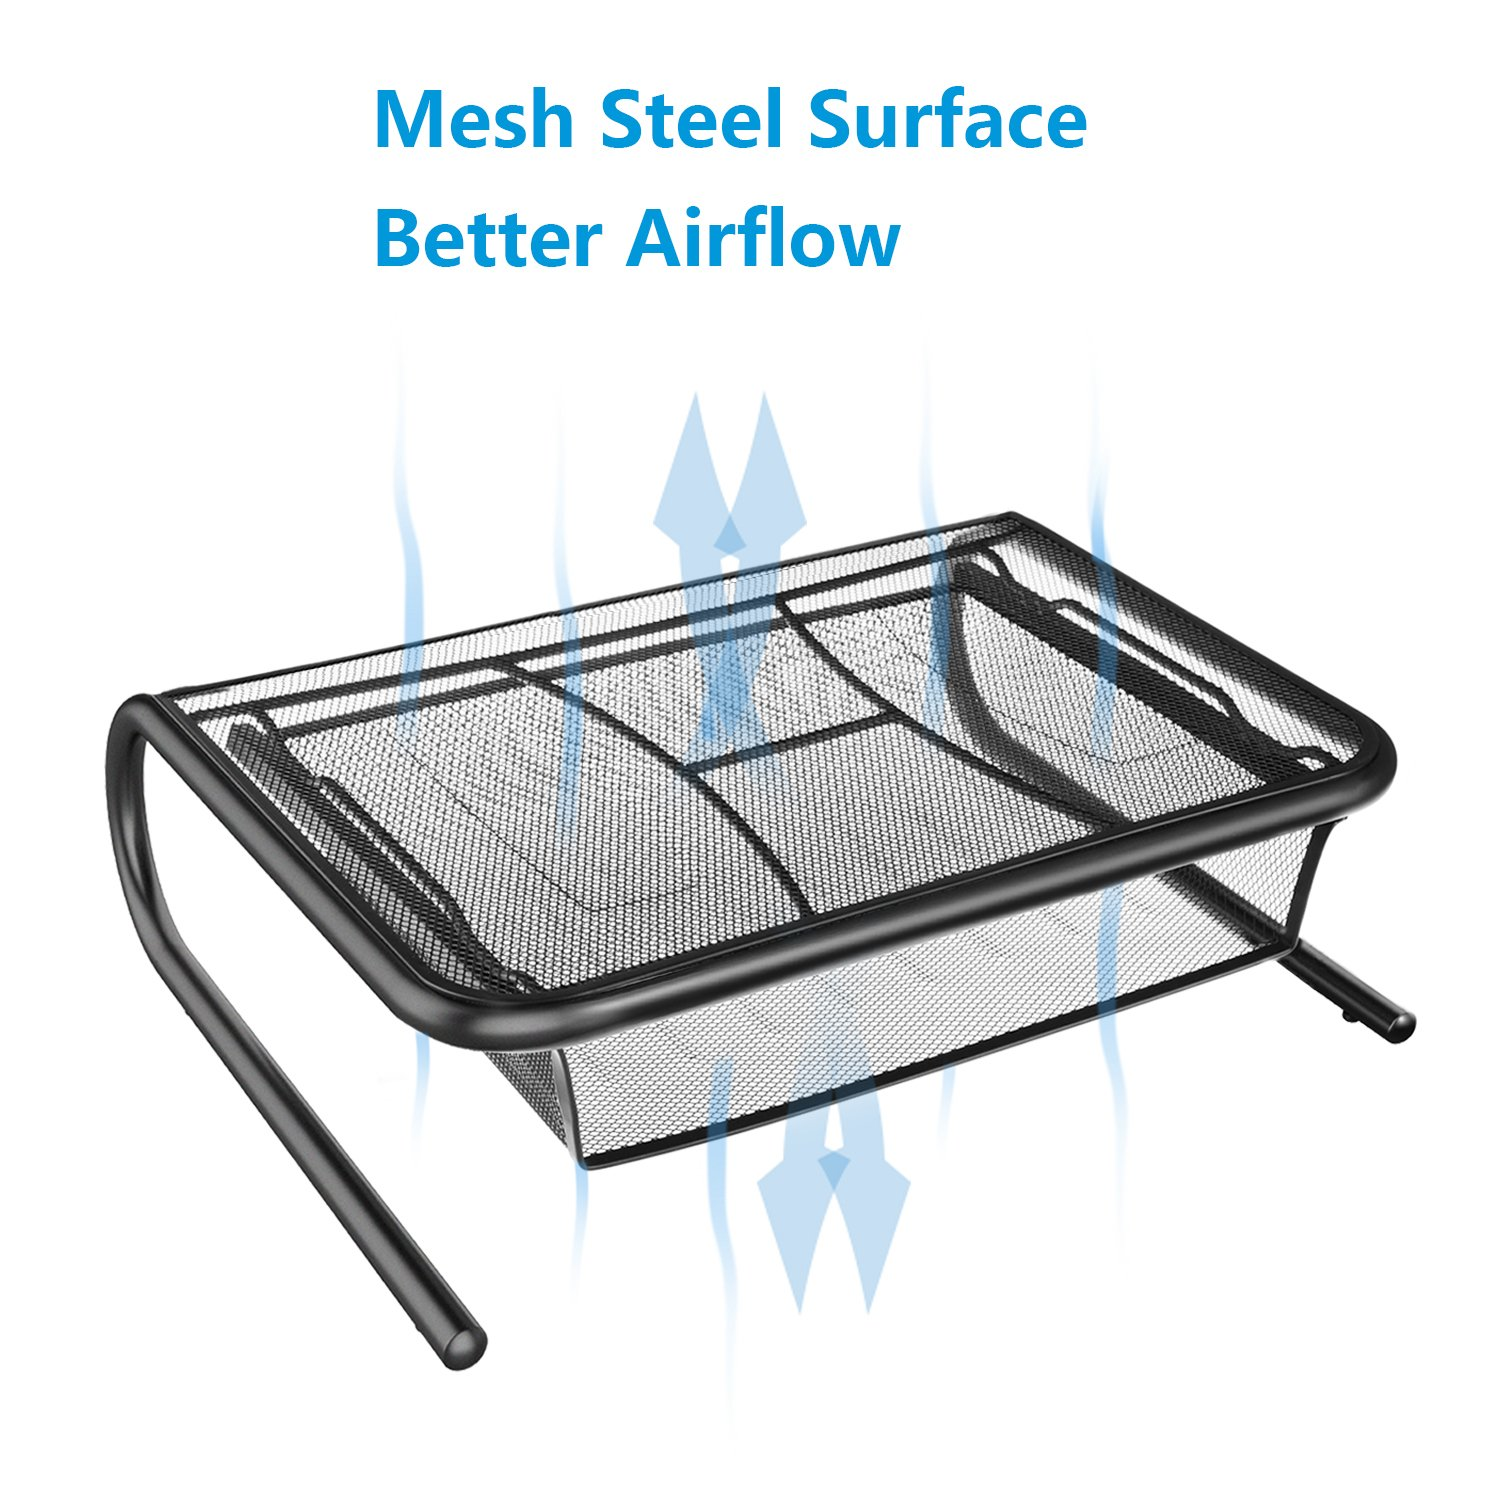 Monitor Stand Riser with Pull Out Storage Drawer - Mesh Metal Printer Holder with Ventilated Surface for Computer, Laptop, Printers - Keeps Your Devices Cool & Prevents Overheating - Premium Computer by HUANUO (Image #6)